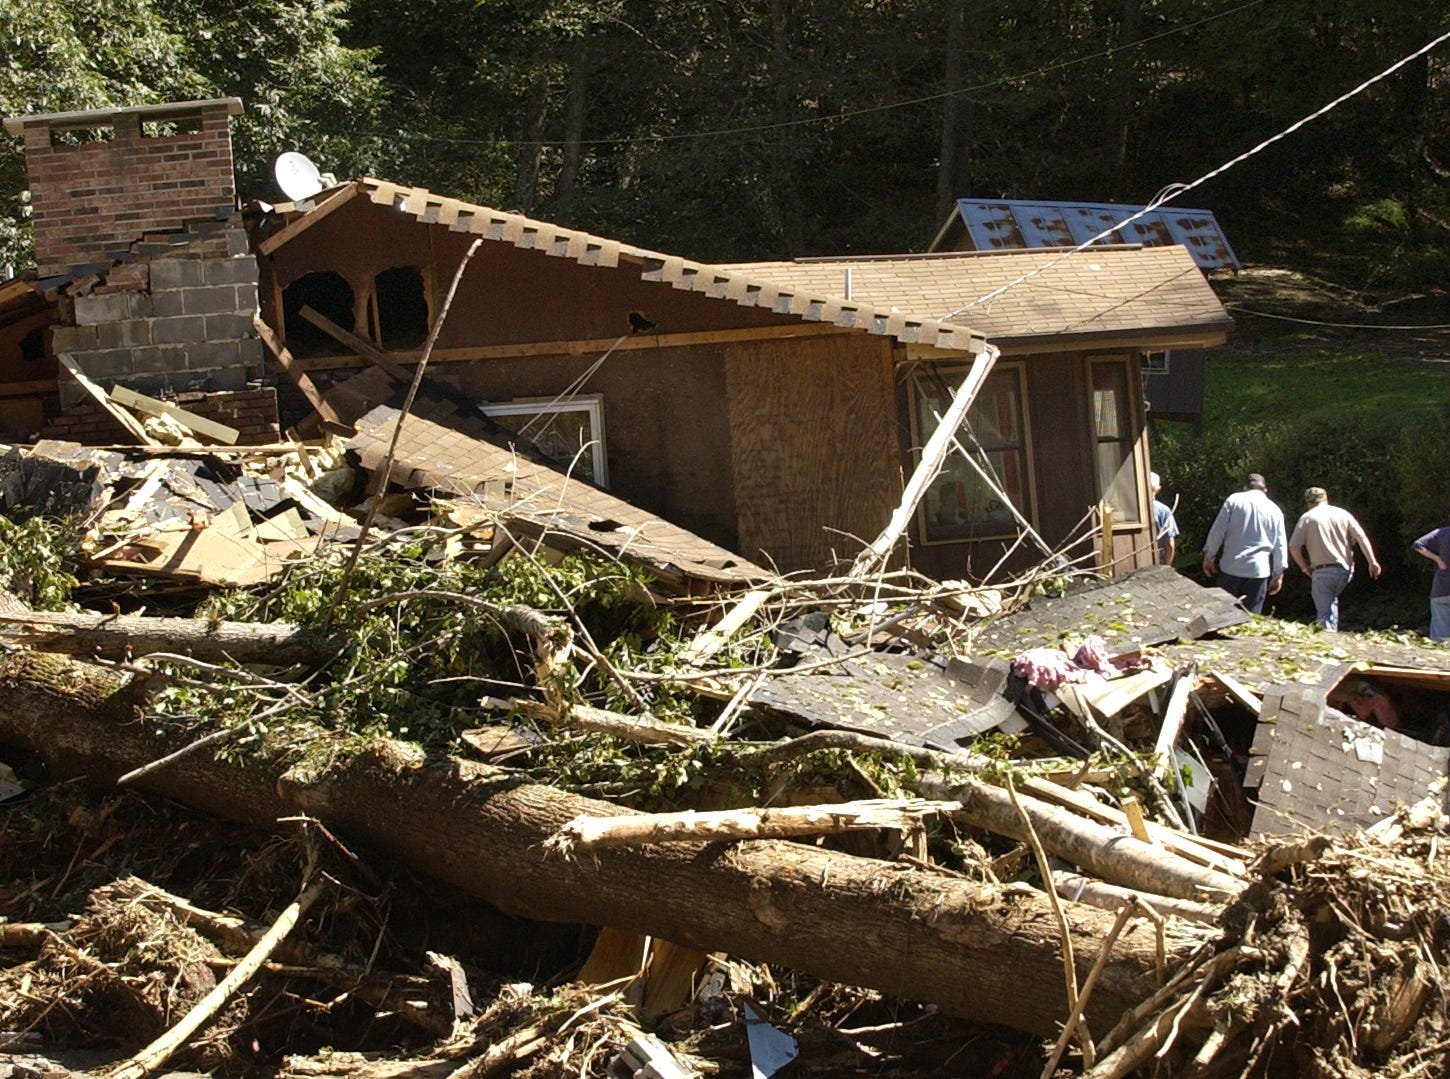 People walk around a heavily damaged house in the Peeks Creek community on Sept 18, 2004, as recovery begins for the area devastated by flooding from Hurricane Ivan.